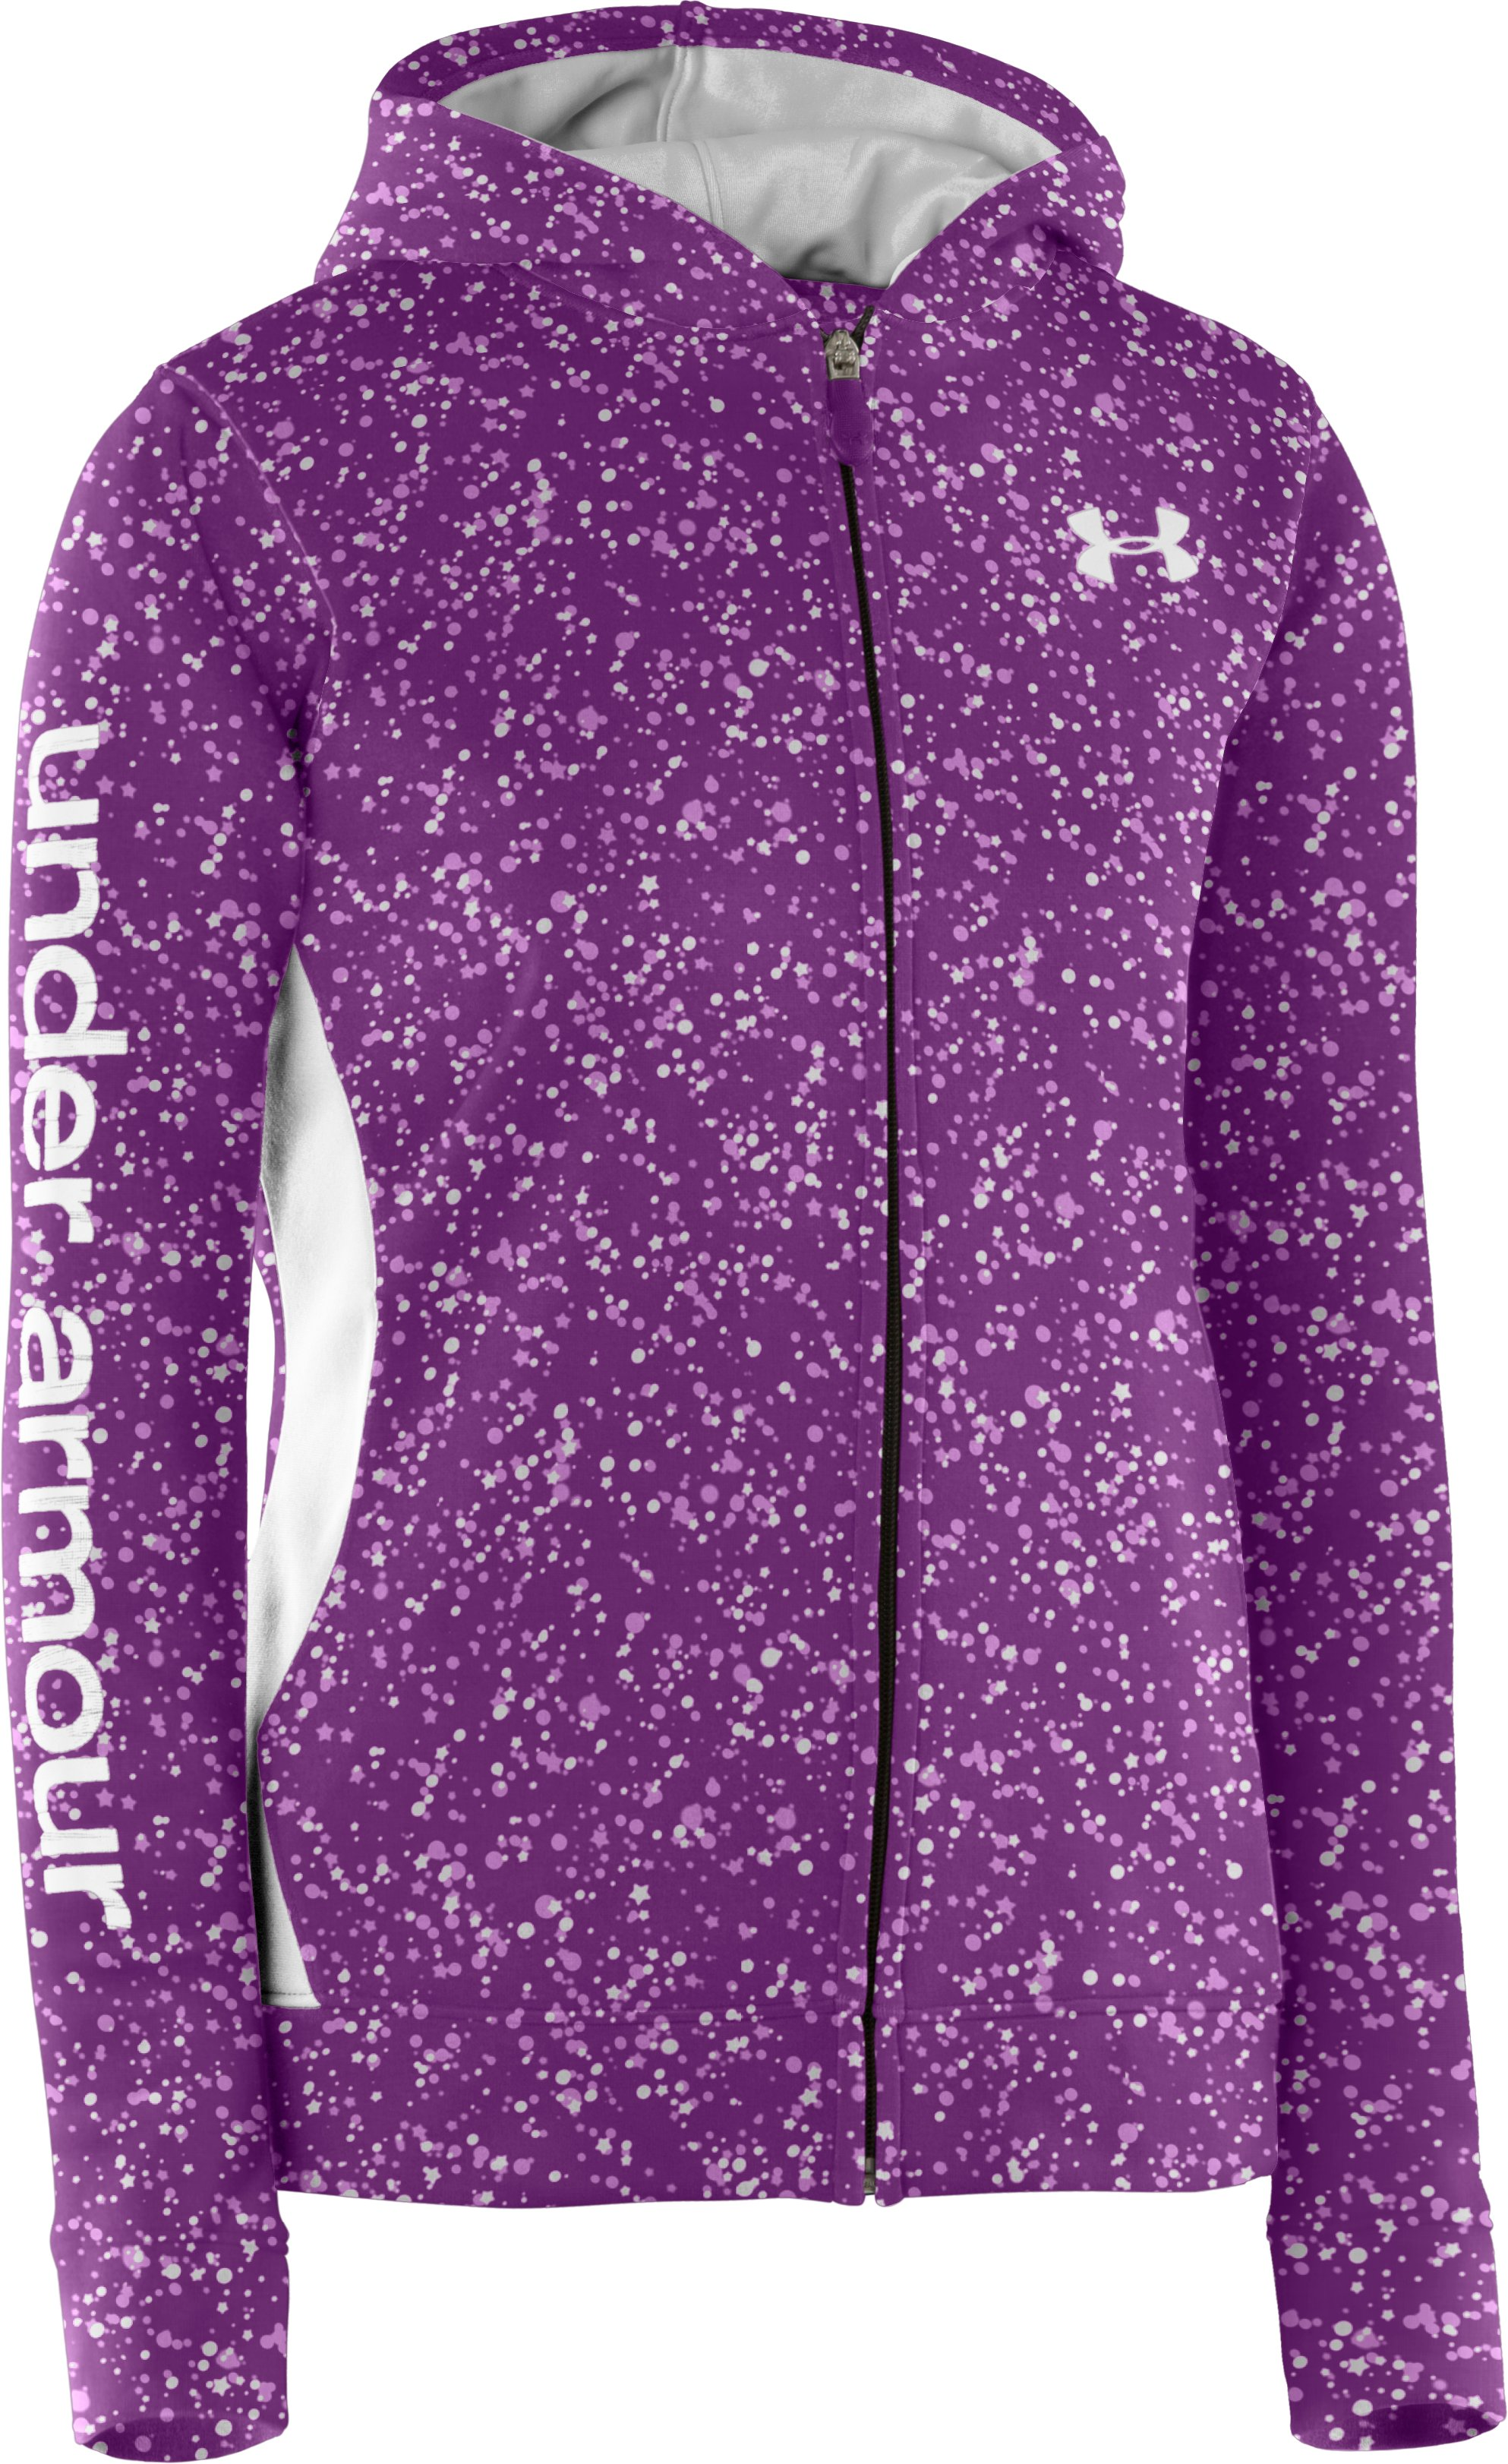 Girls' Armour® Fleece Full Zip Hoodie, Hendrix, zoomed image